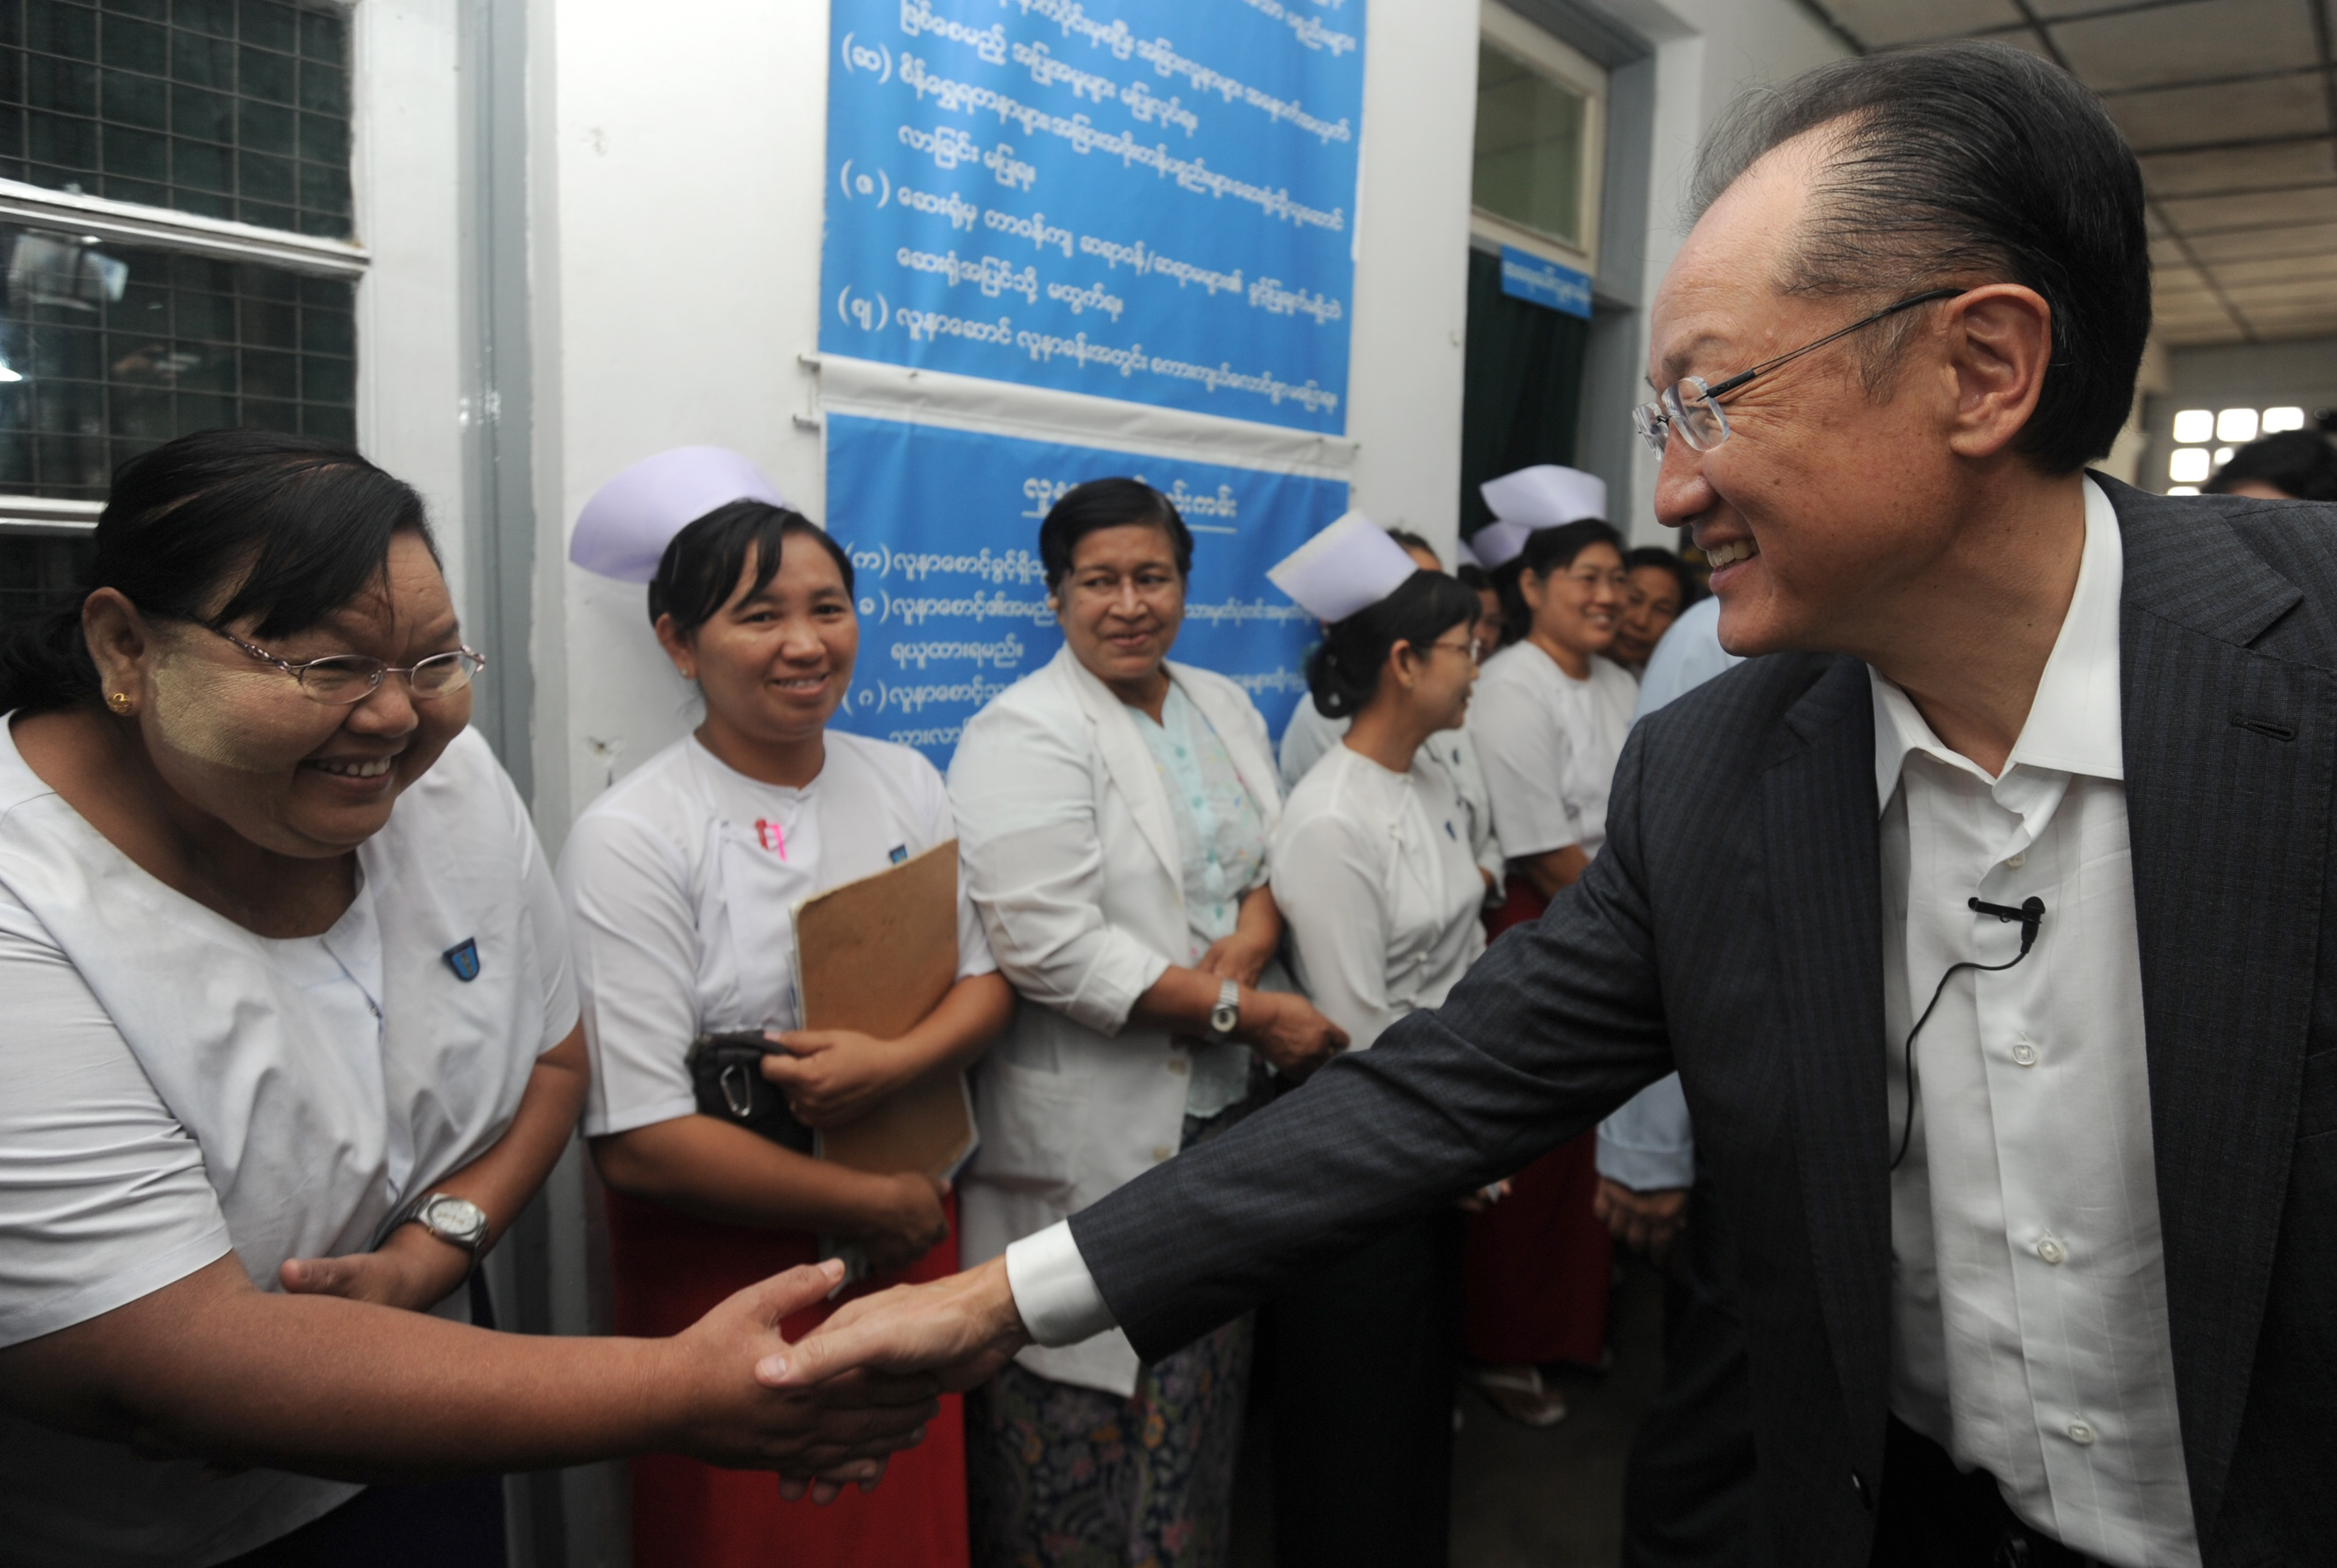 Jim Yong Kim, president of the World Bank Group, shake hands with a nurse as he arrives at a township hospital on the outskirts of Yangon on January 26, 2014 (AFP Photo)